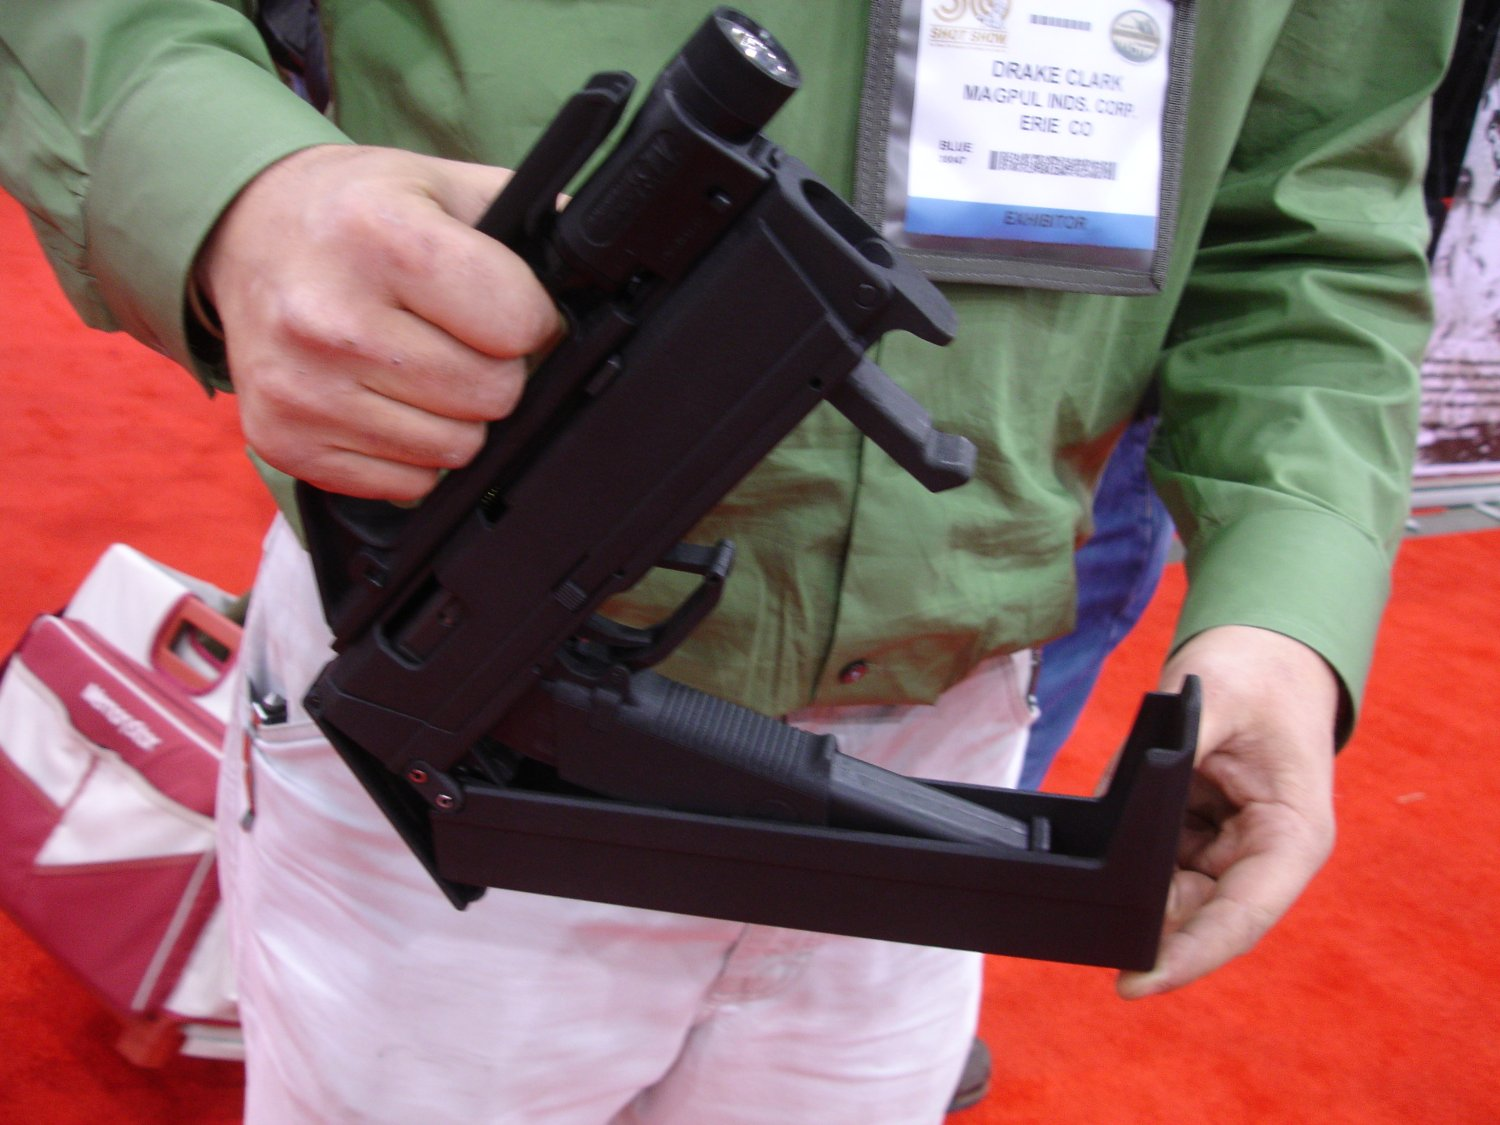 SHOTShow2008 MagPulGlockSubgun Semi Open 1 2 01 2 08 <!  :en  >MagPul FMG9: Prototype 9mm Folding Submachine Gun<!  :  >